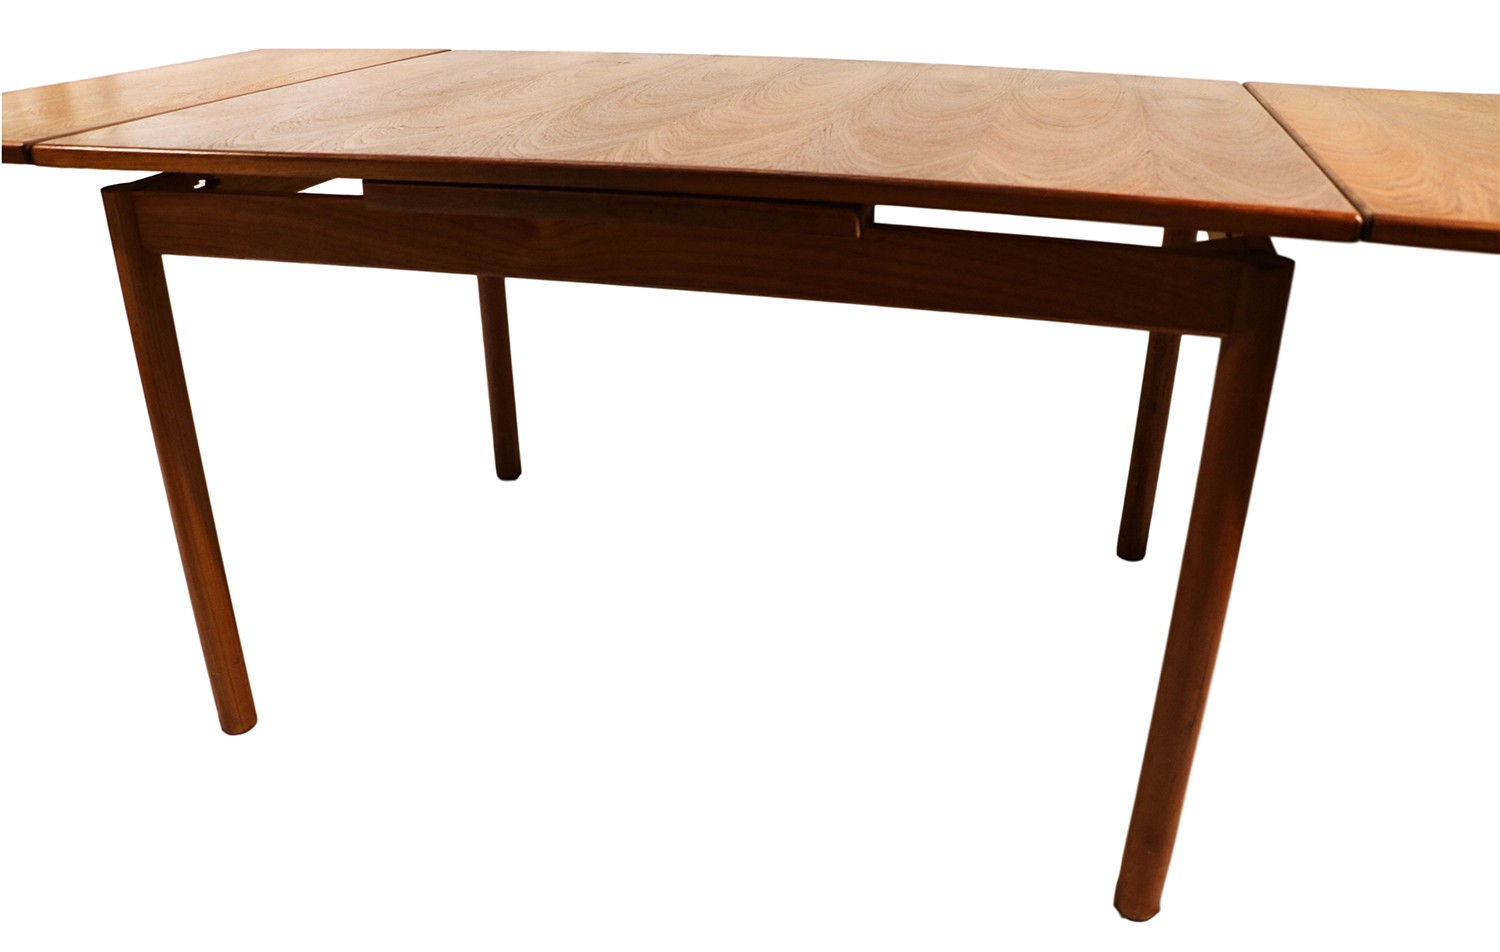 danish modern teak extendable dining table. Black Bedroom Furniture Sets. Home Design Ideas